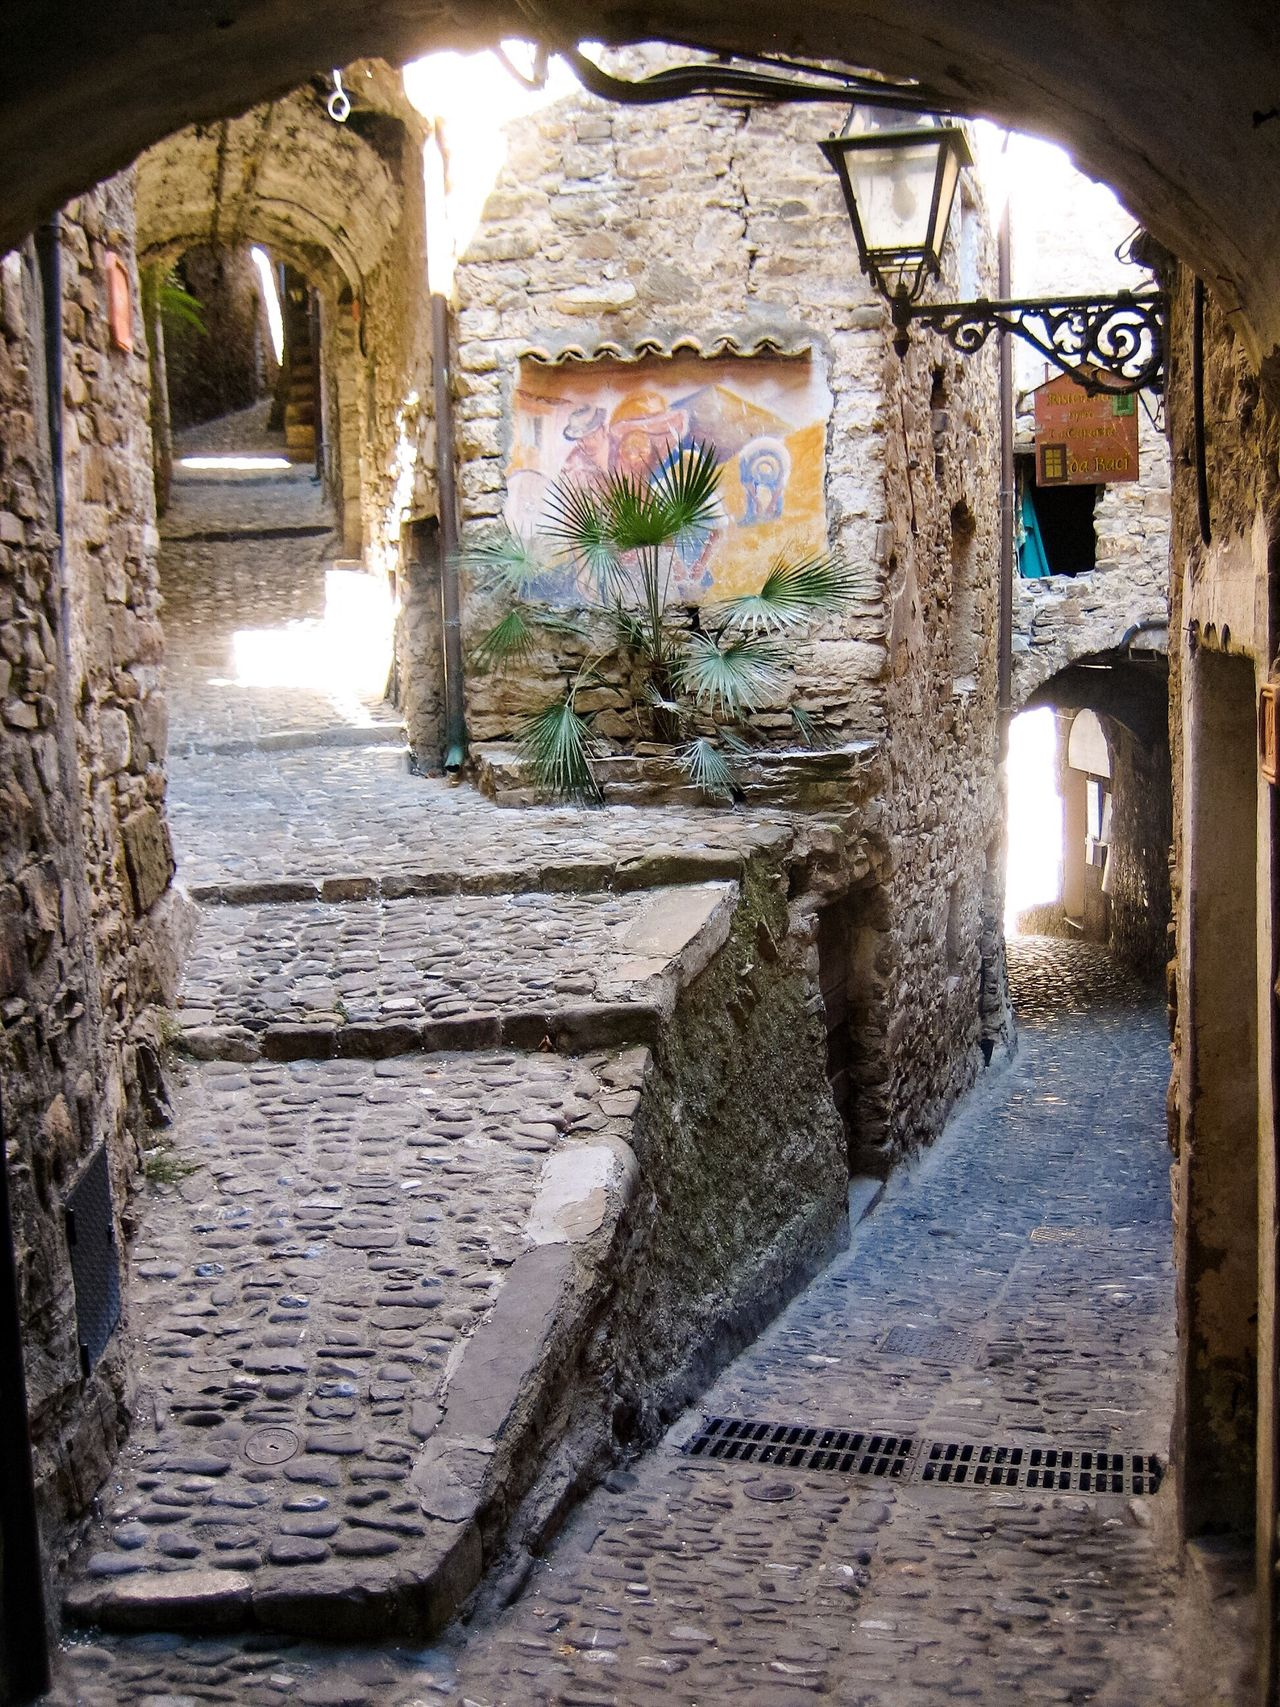 No People Eyeemphoto Tranquility Tranquil Scene Summer Alley Day Paved Narrow Narrow Street Old Buildings Buildings Italy Narrow Alleys Narrowpath Downtown Italian Village  Romantic Paved Street The Way Forward